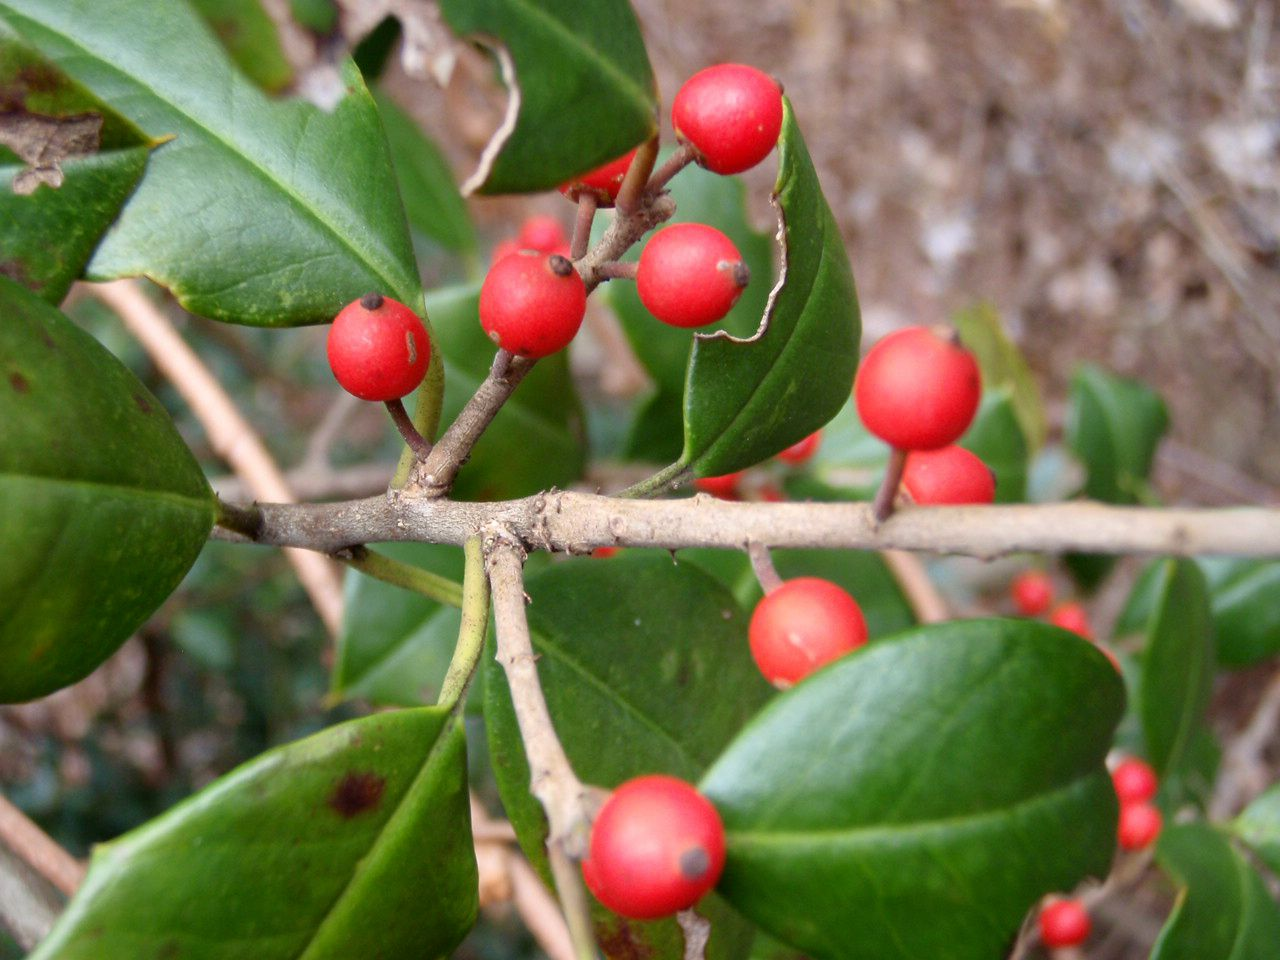 Survival Skills How To Identify Toxic And Edible Red Berries